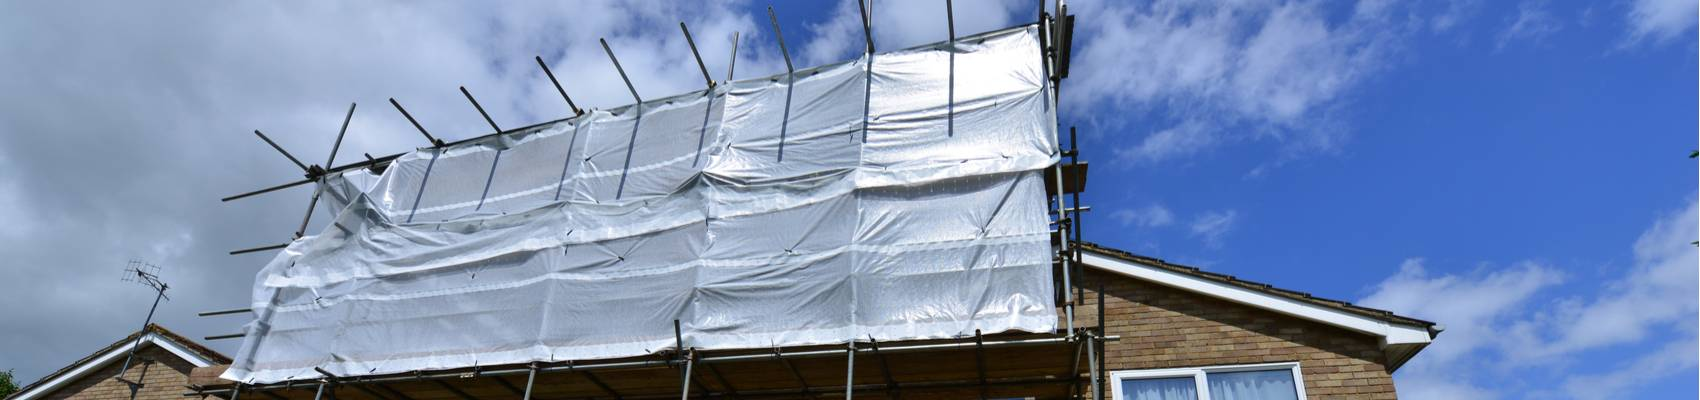 Scaffolding Solutions from Network Scaffolding